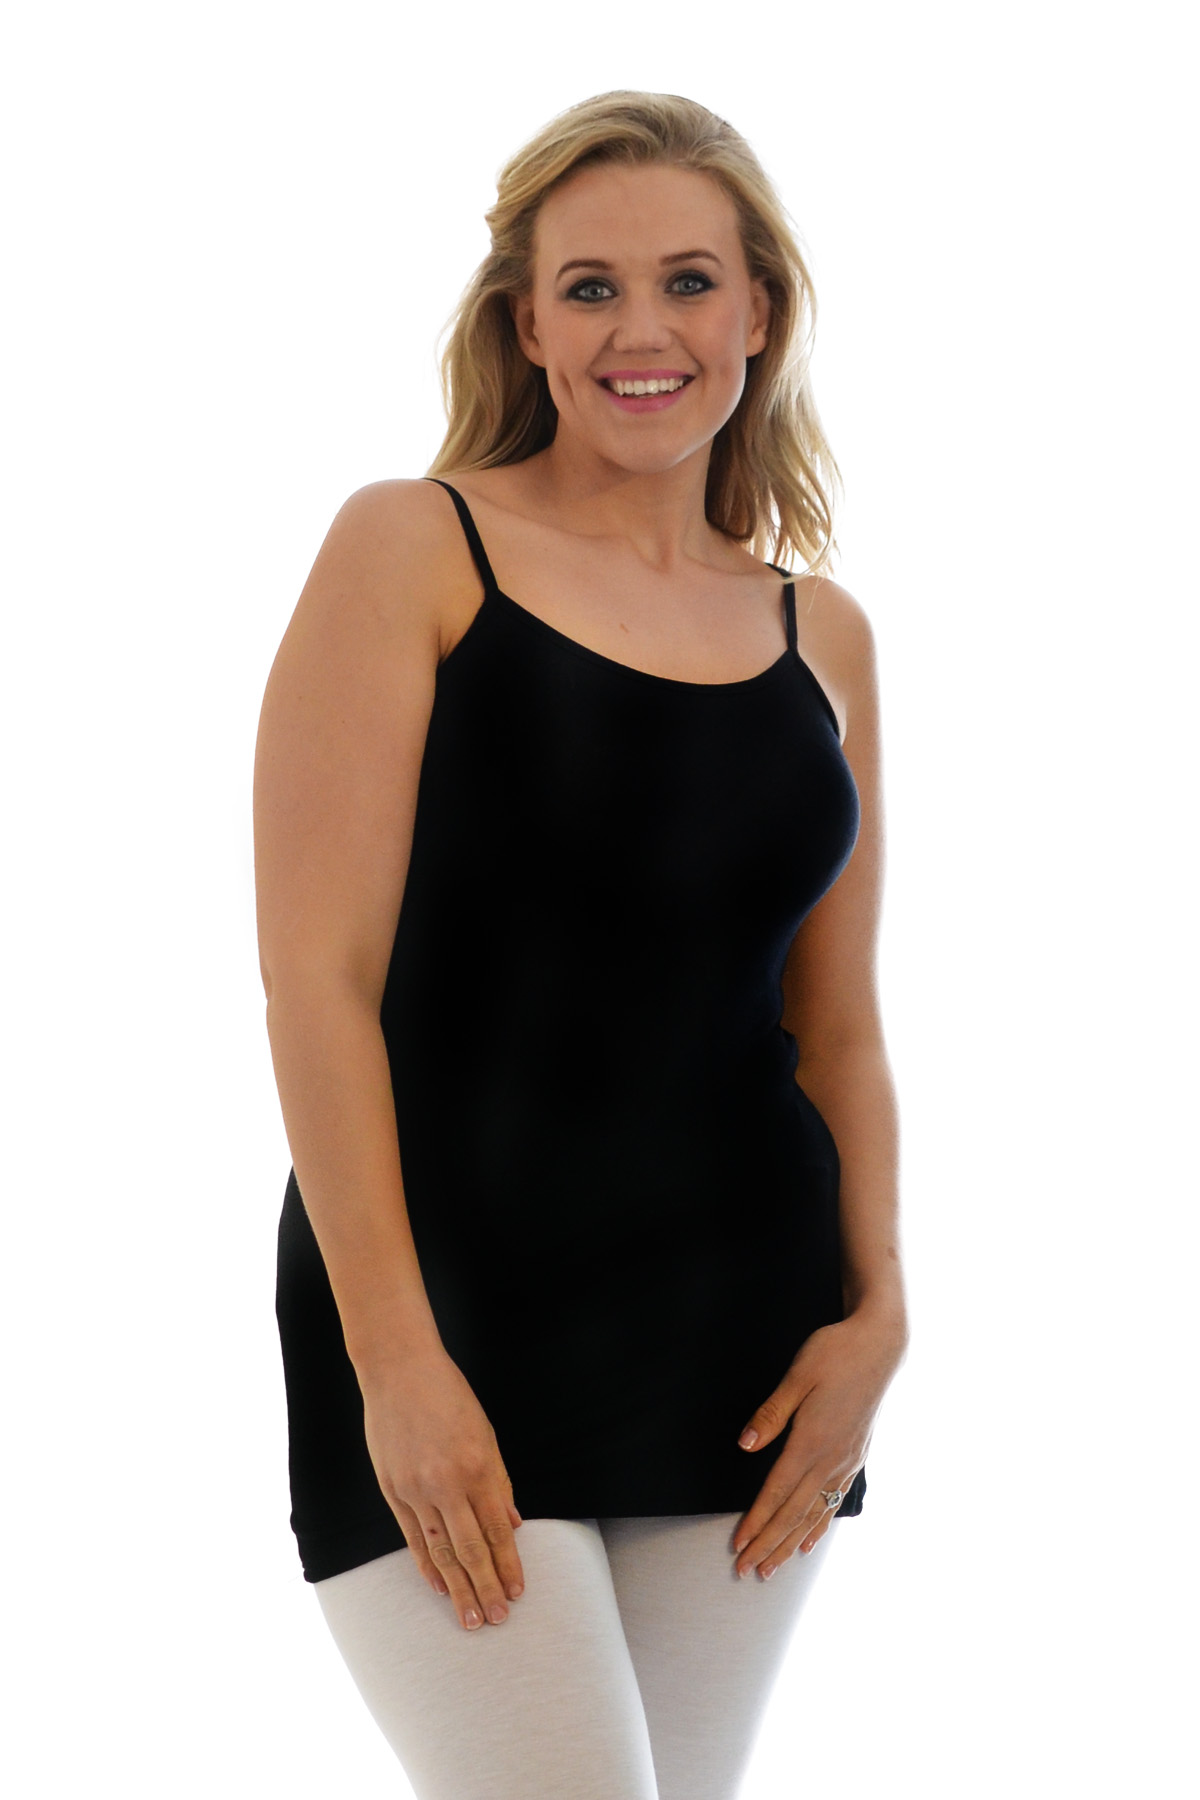 New Tank Dress cami seamless Long shirt top stretch Basics Slip underwear Tips Searching for bargain online shops that provide old editions of software wherein it will save you nearly half the actual regular price (when this was newly made available).